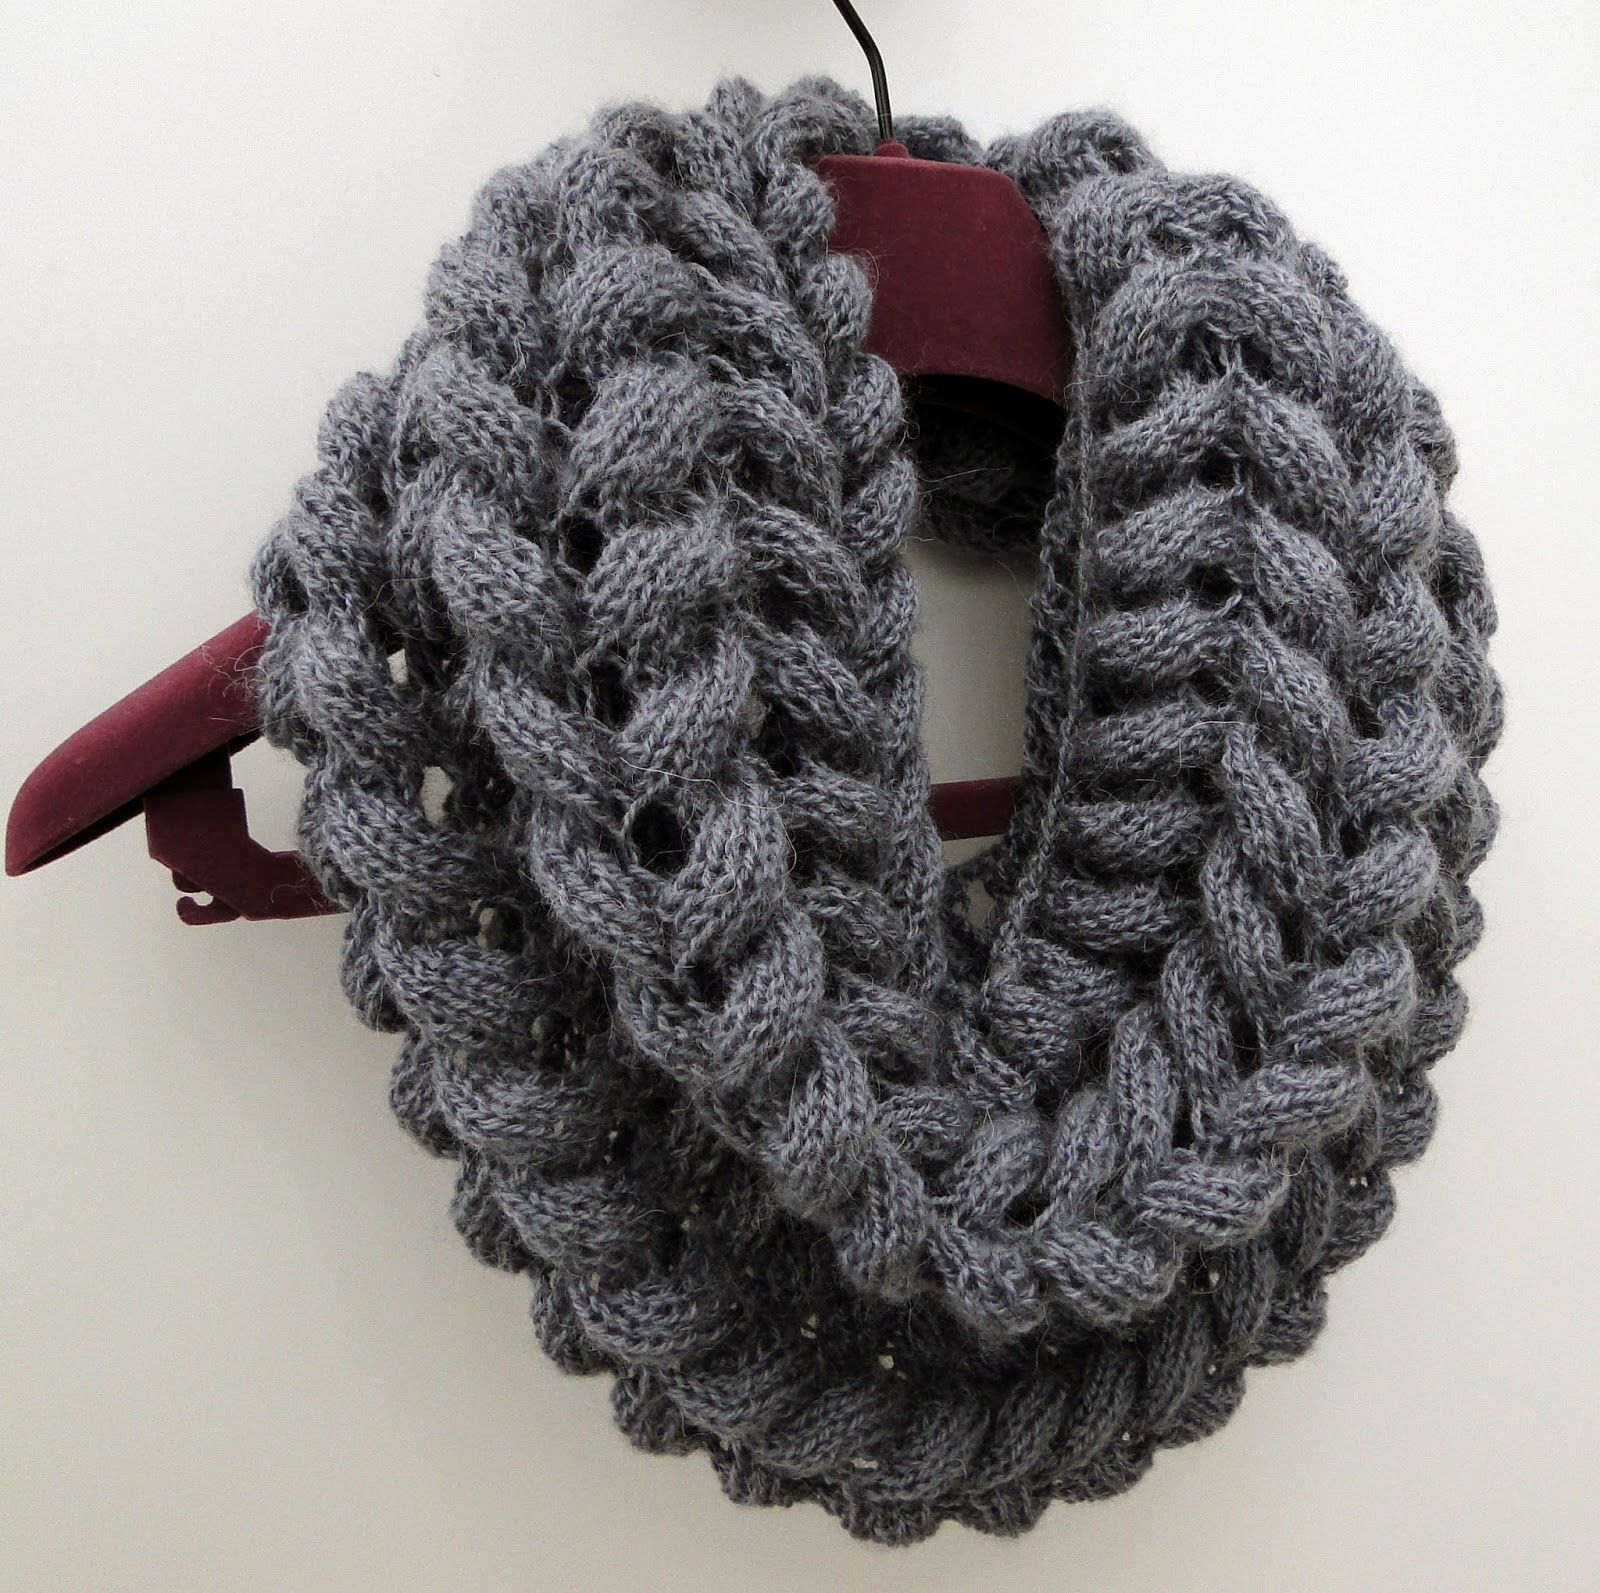 Scarf cowl knitting pattern c pinterest knitting patterns scarf cowl knitting pattern bankloansurffo Image collections